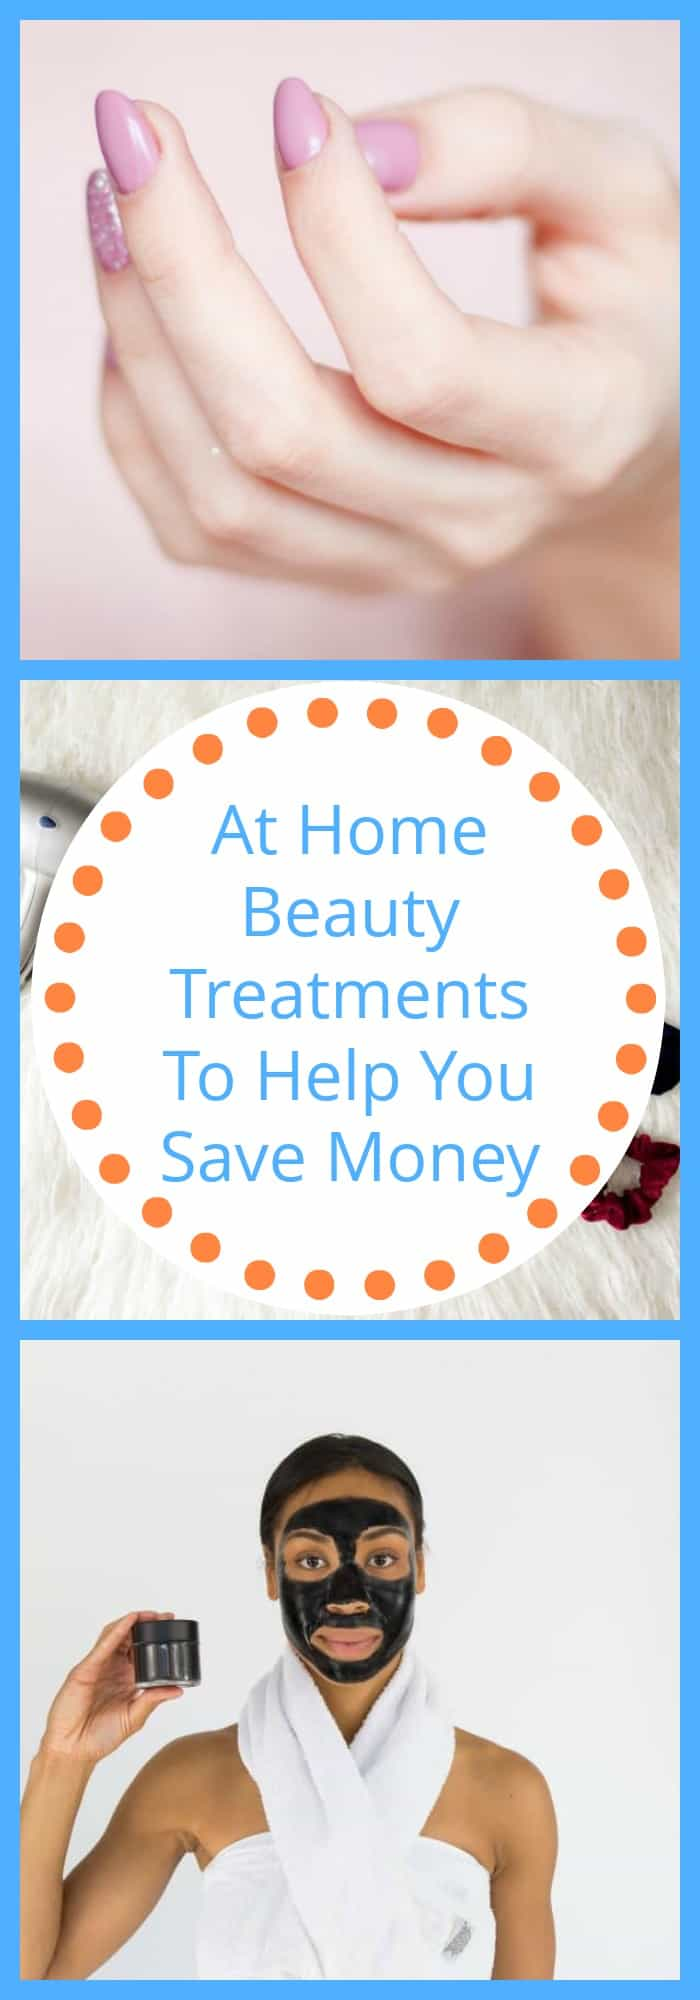 At Home Beauty Treatments